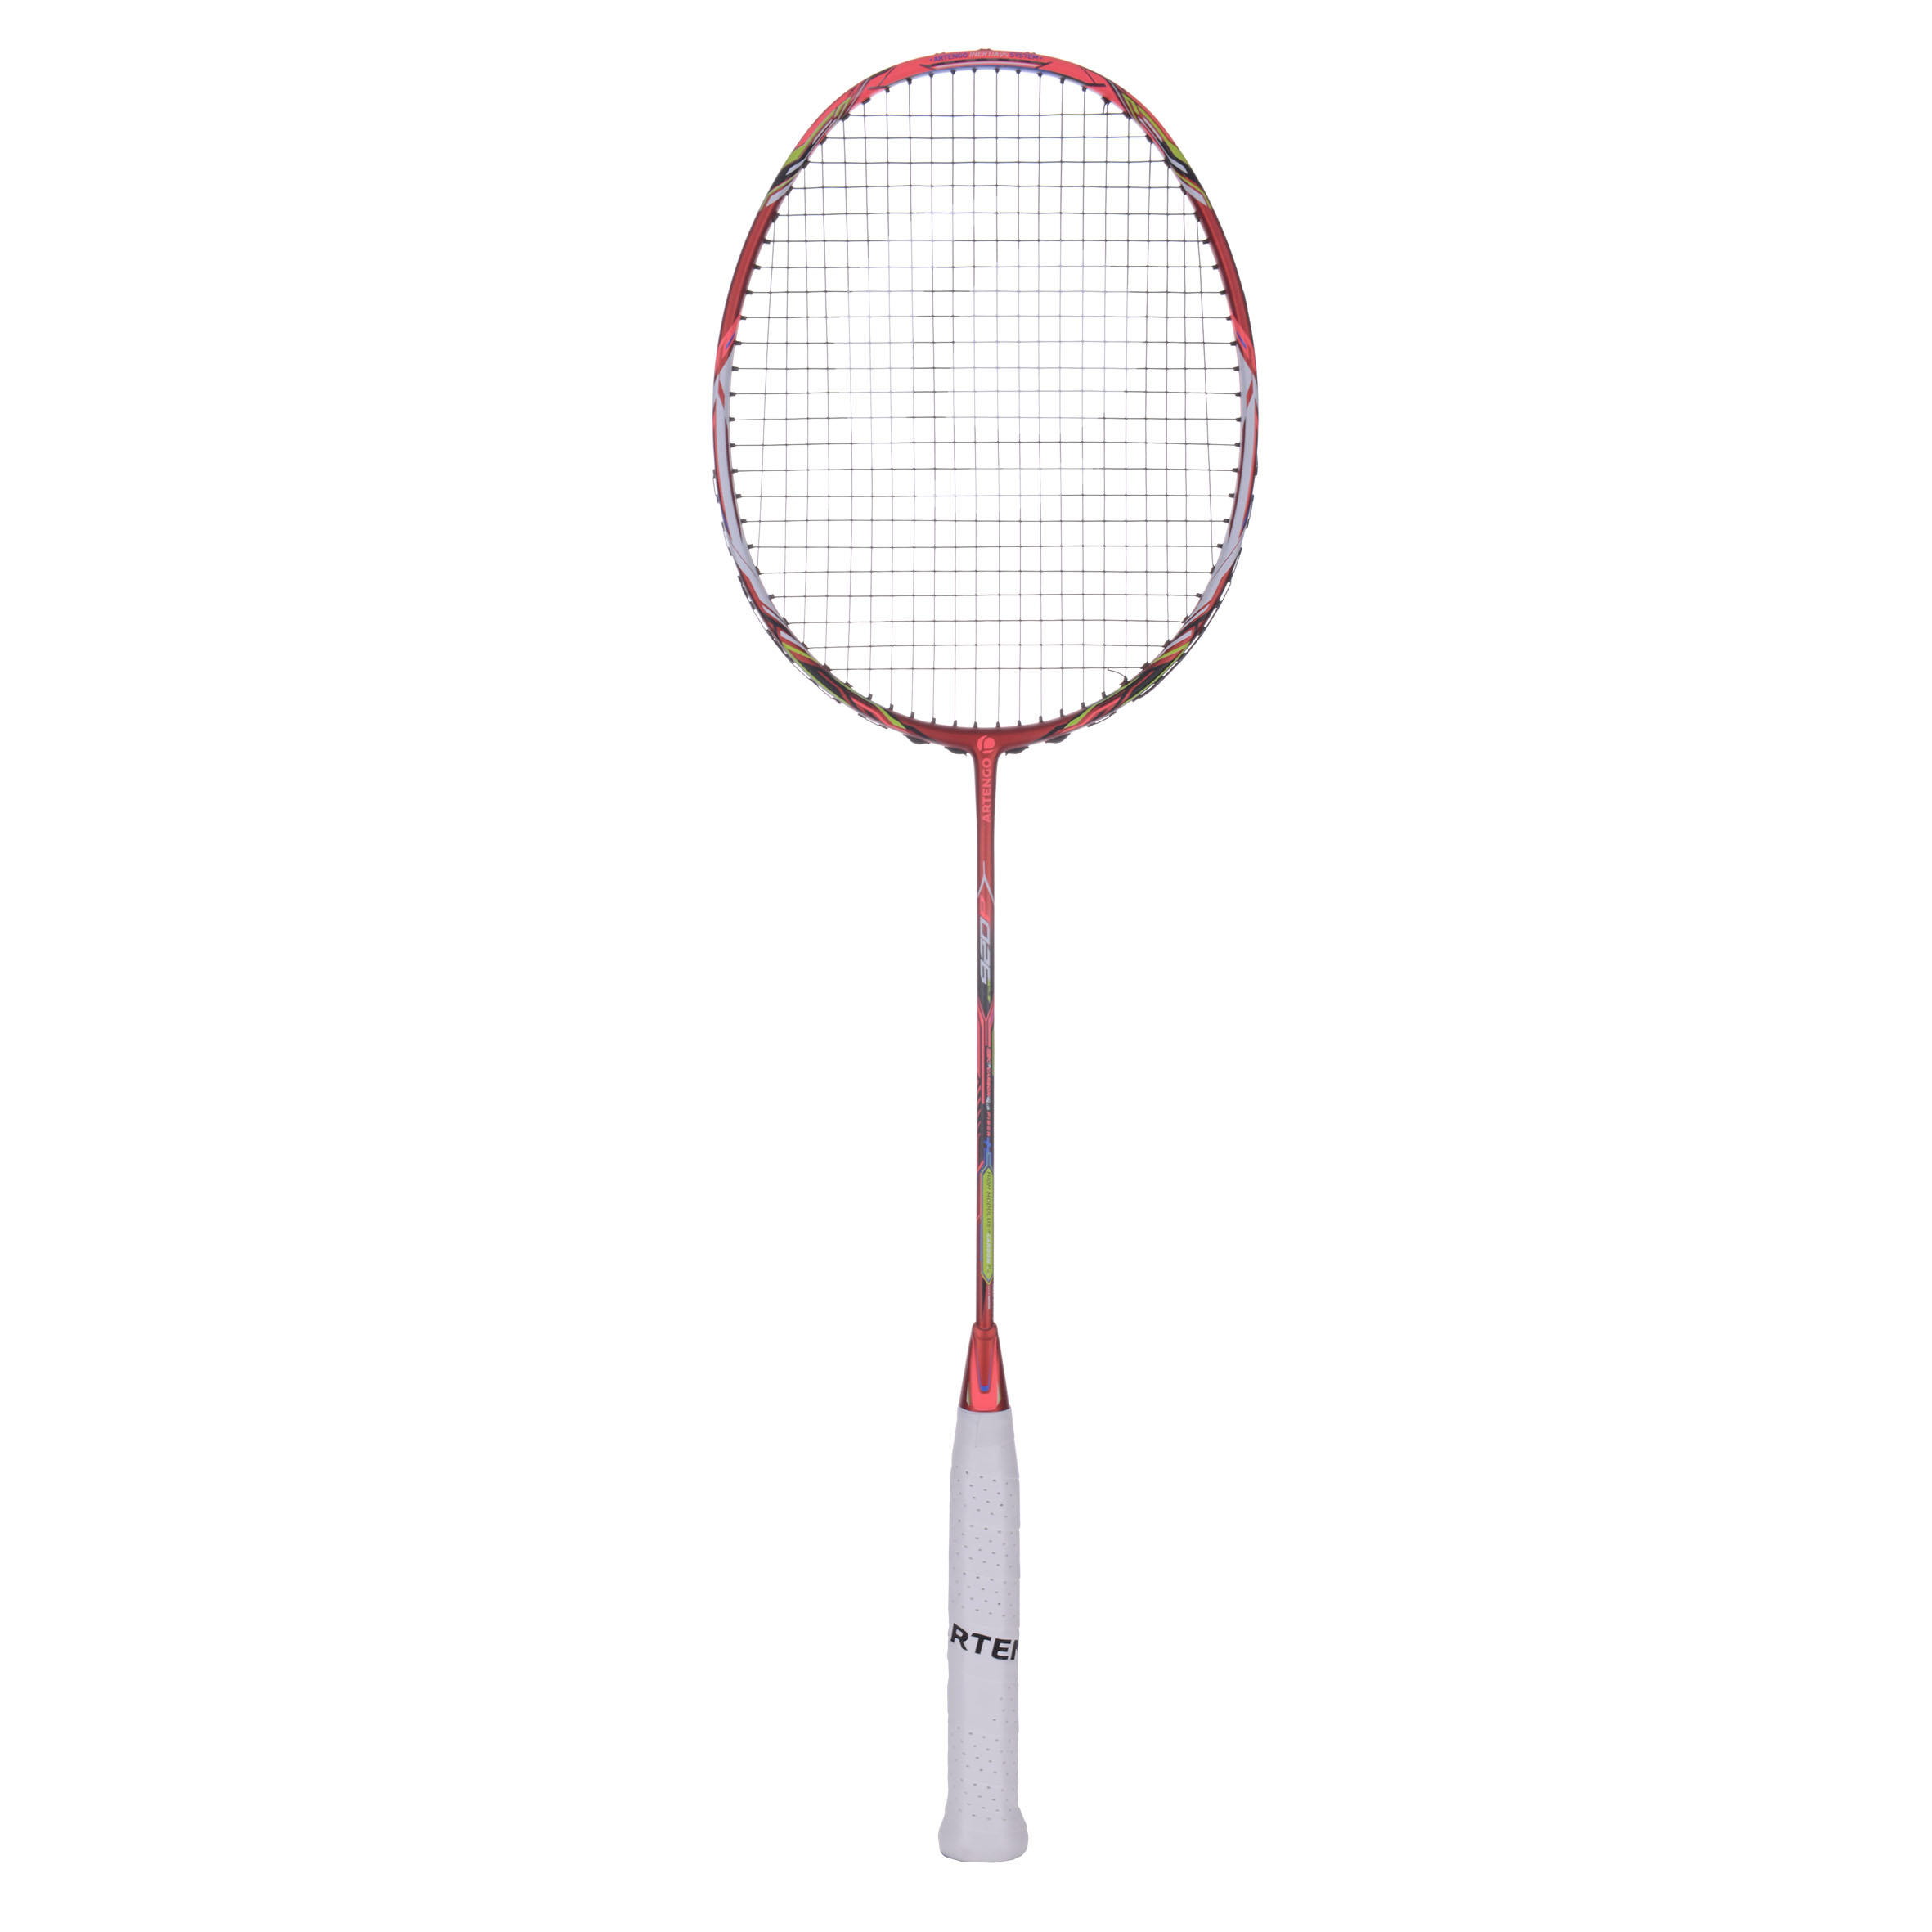 BR 920 P Adult Badminton Racquet - Flash Red